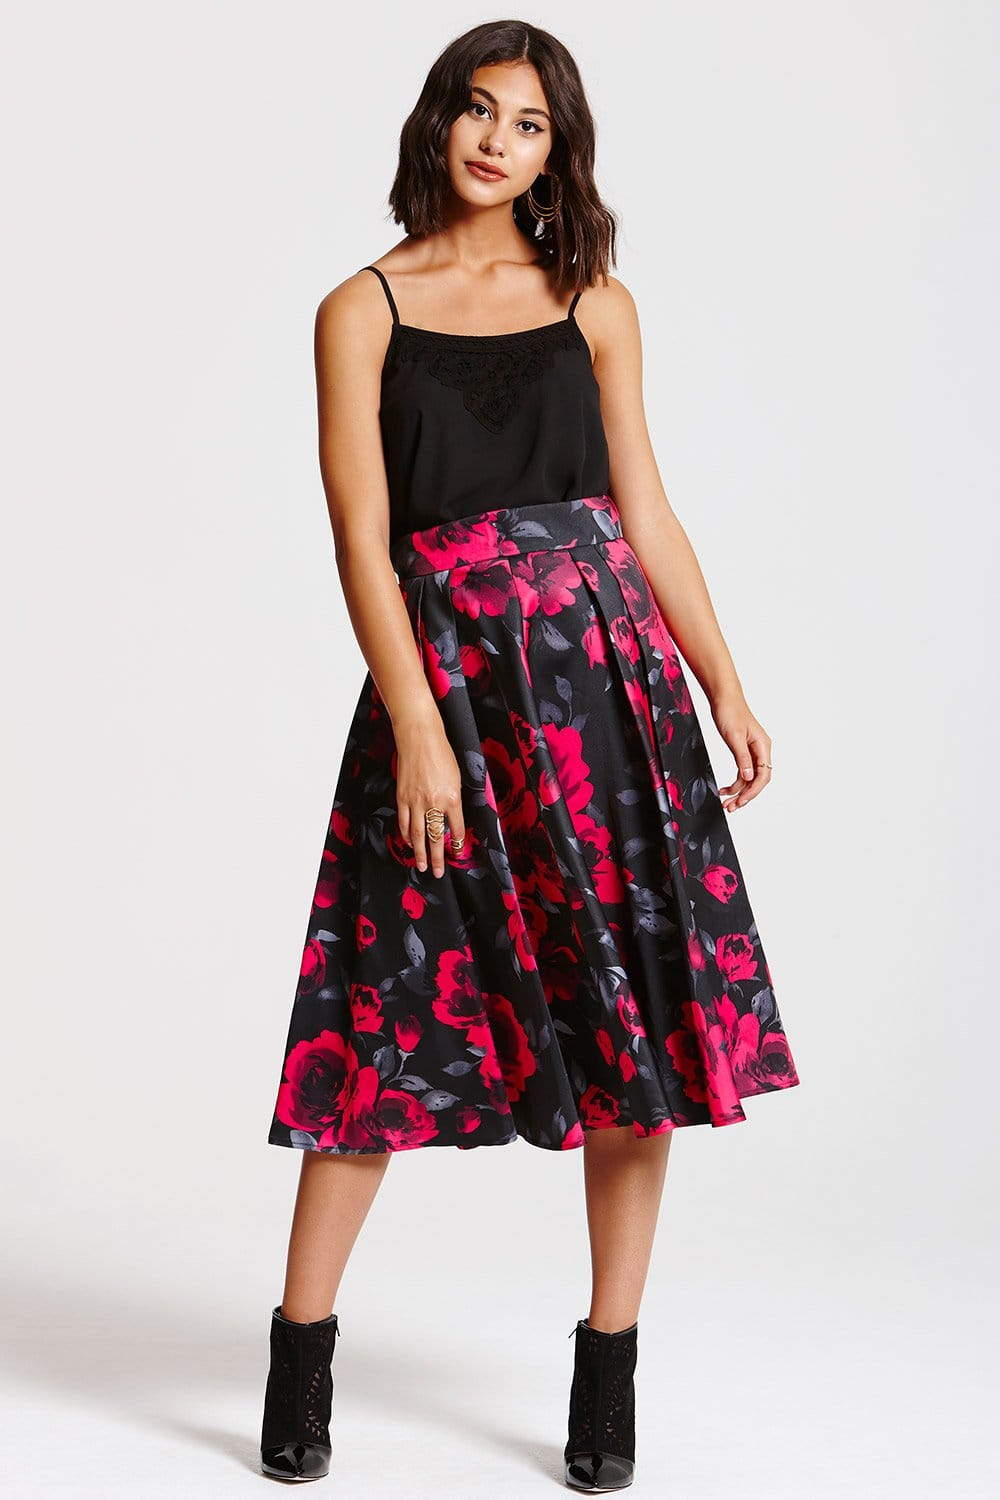 Outlet Girls On Film Black and Pink Floral A-Line Skirt - Outlet ...